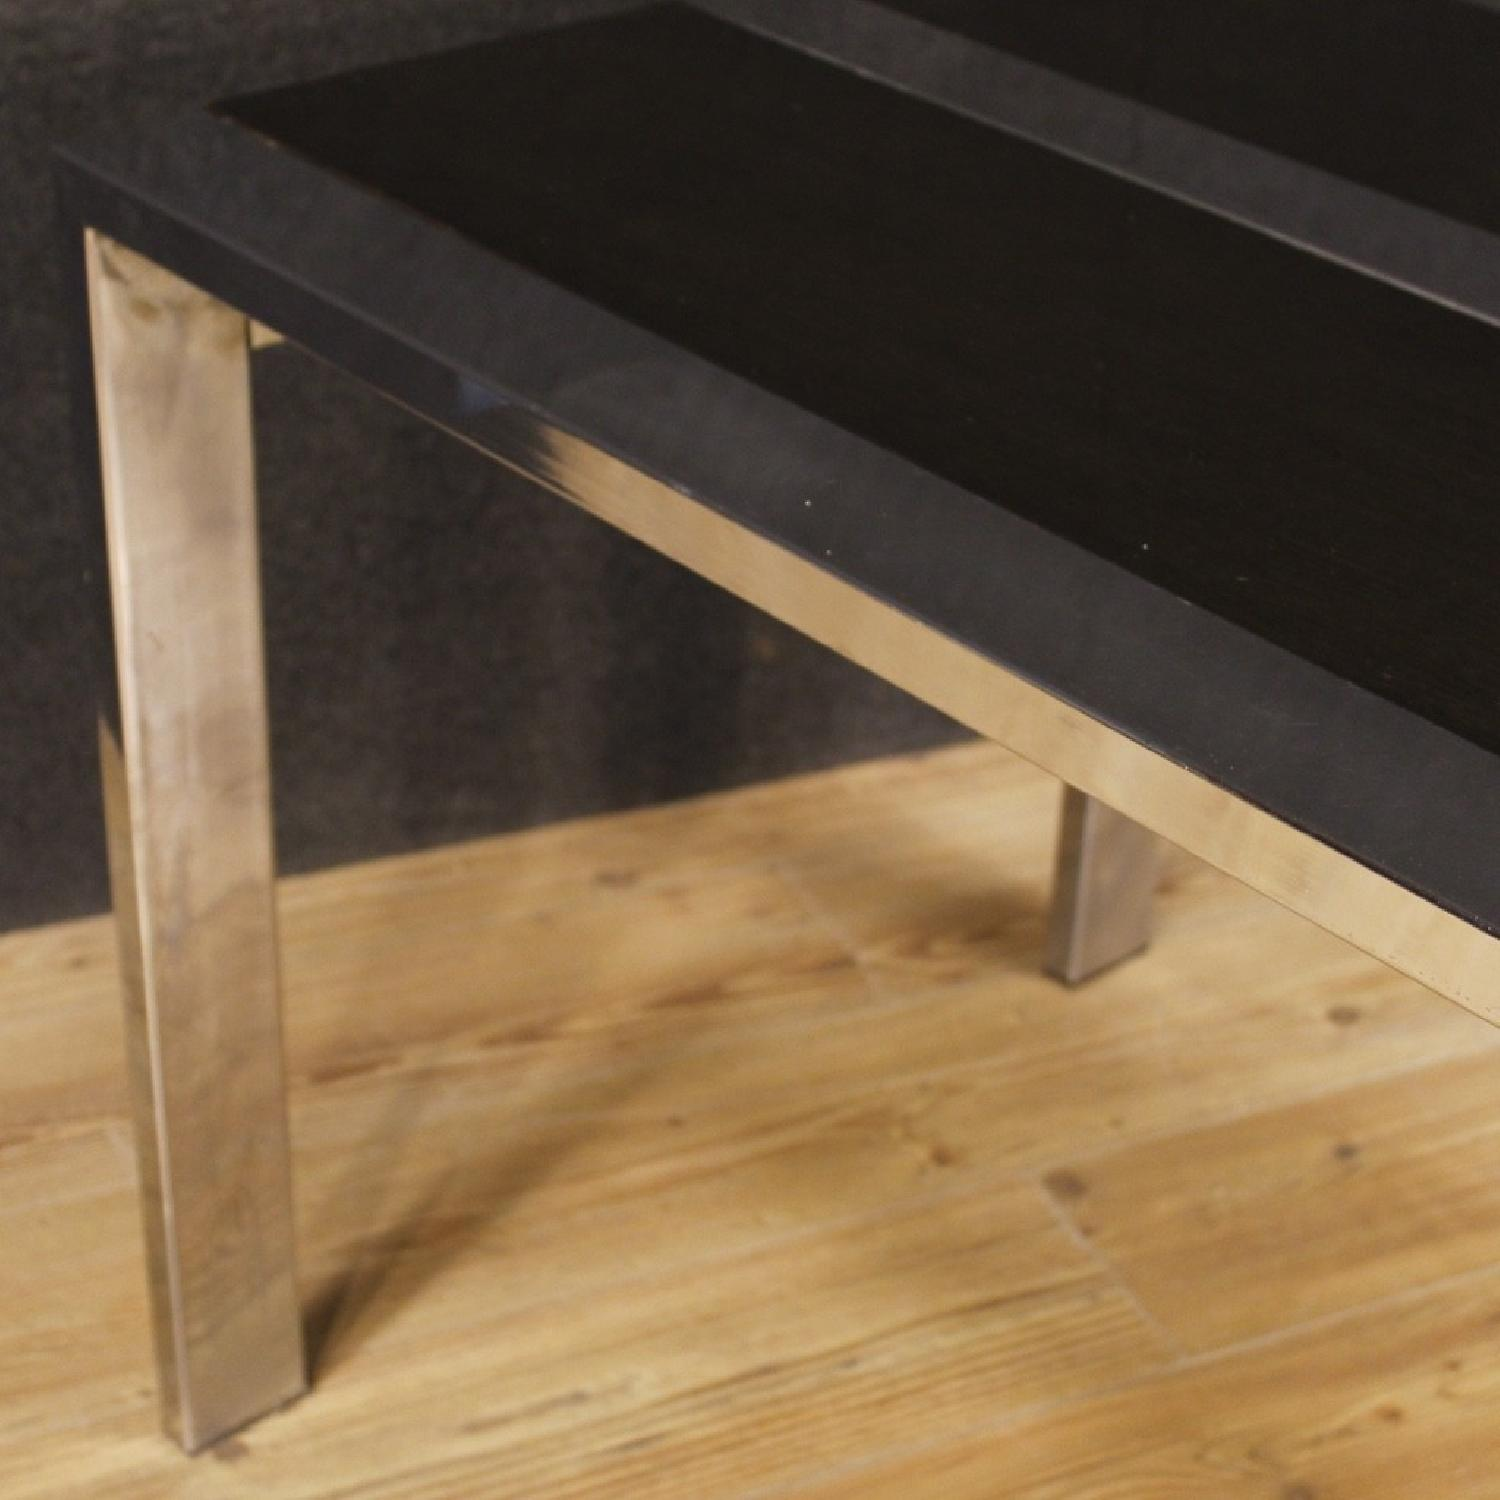 20th Century 1970 Wood & Metal Italian Design Table